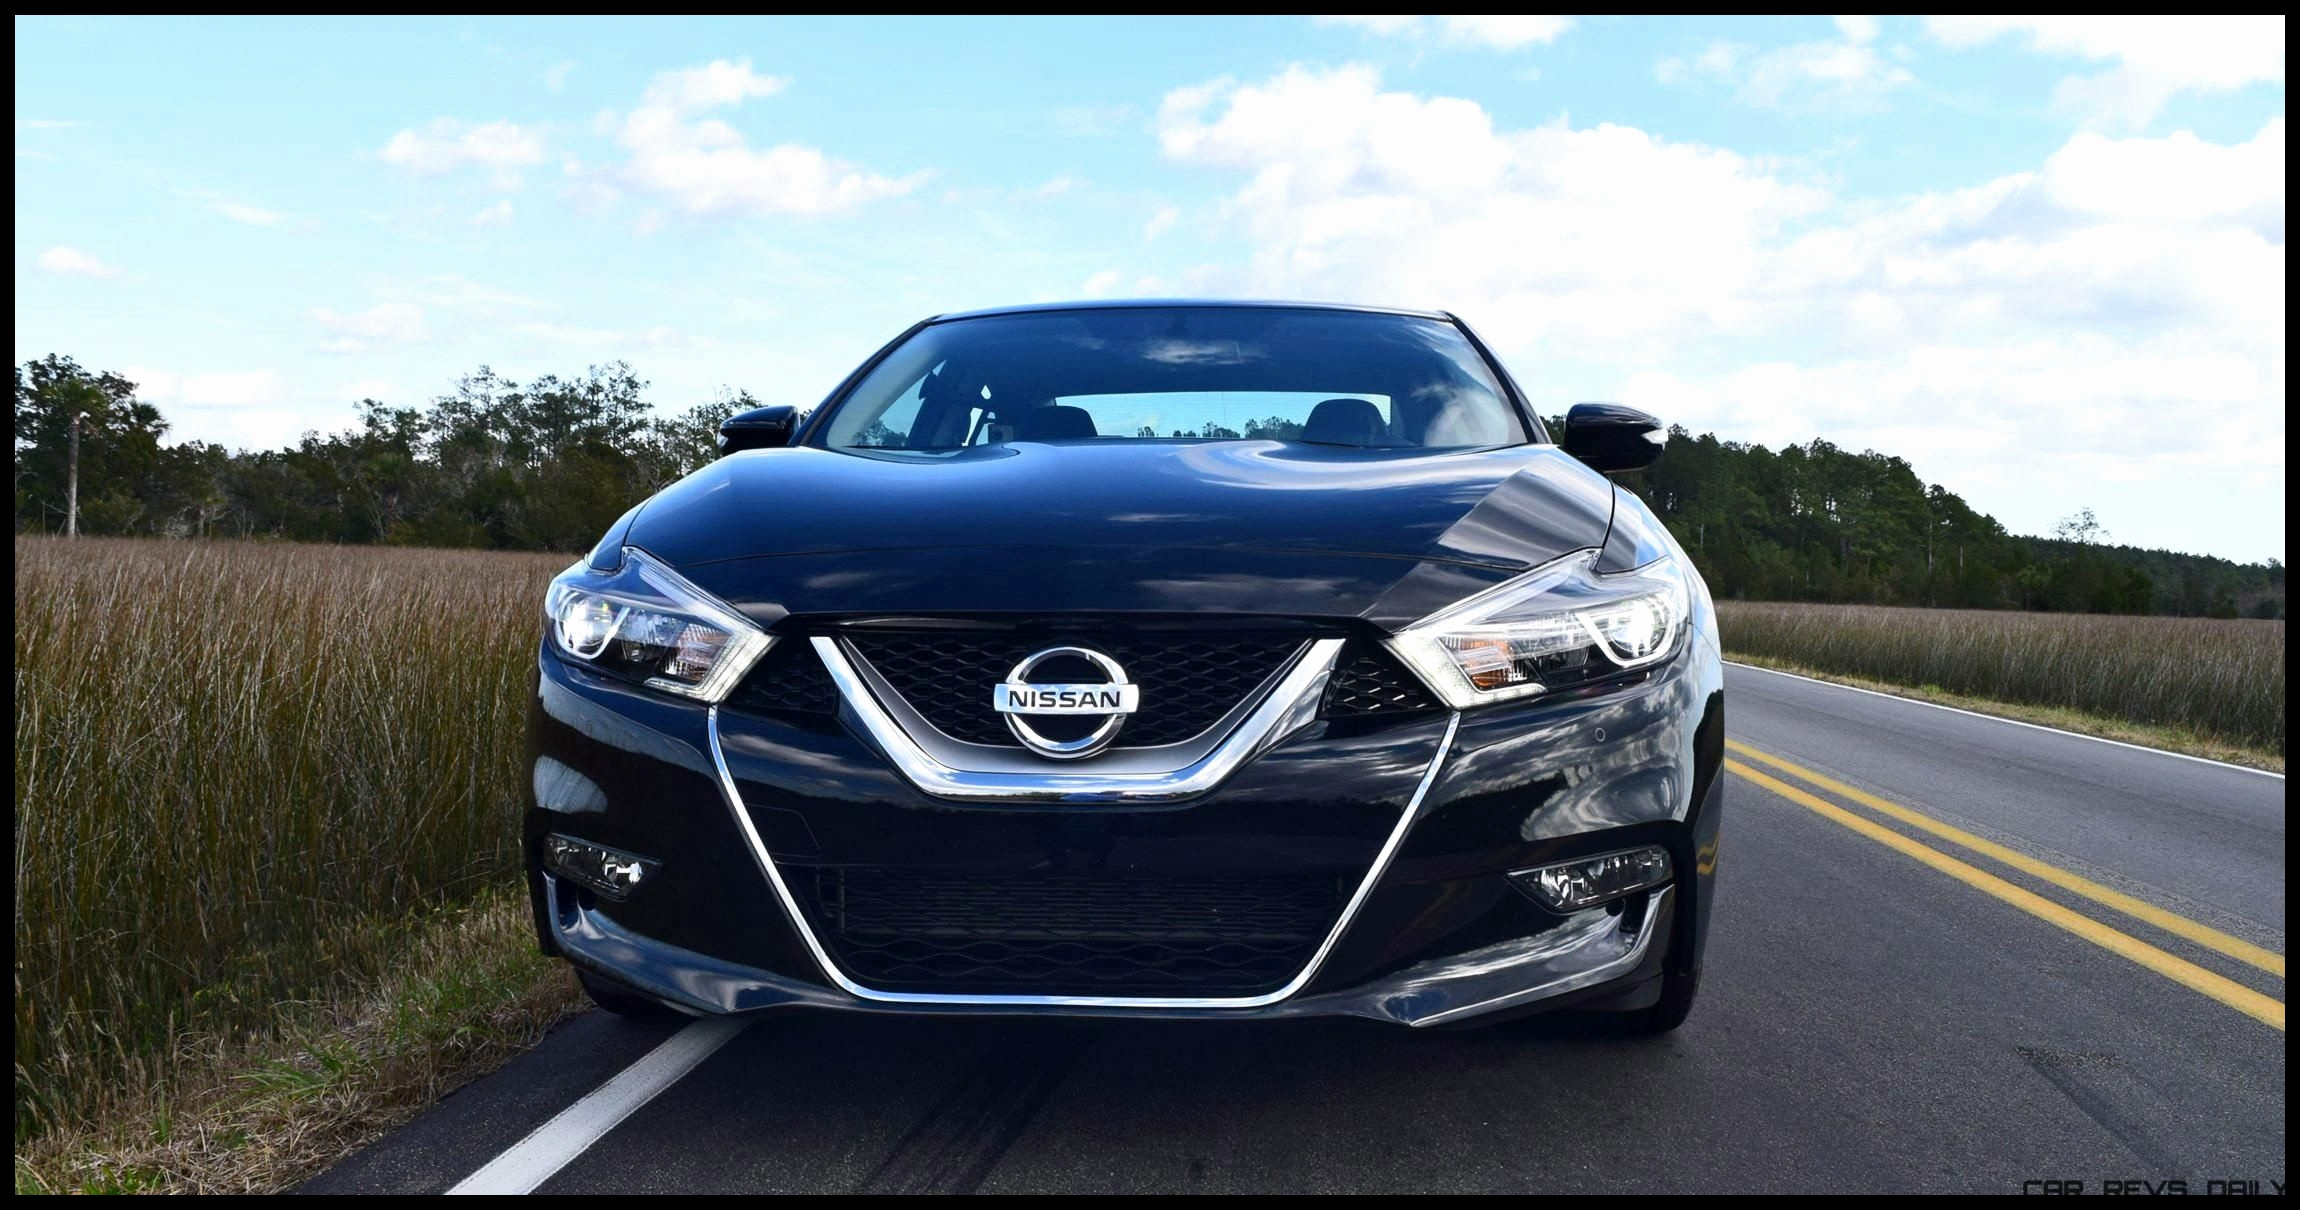 Richmond Bmw Service Unique Nissan Maxima 2016 Fresh New and Used Cars for Sale at Richmond